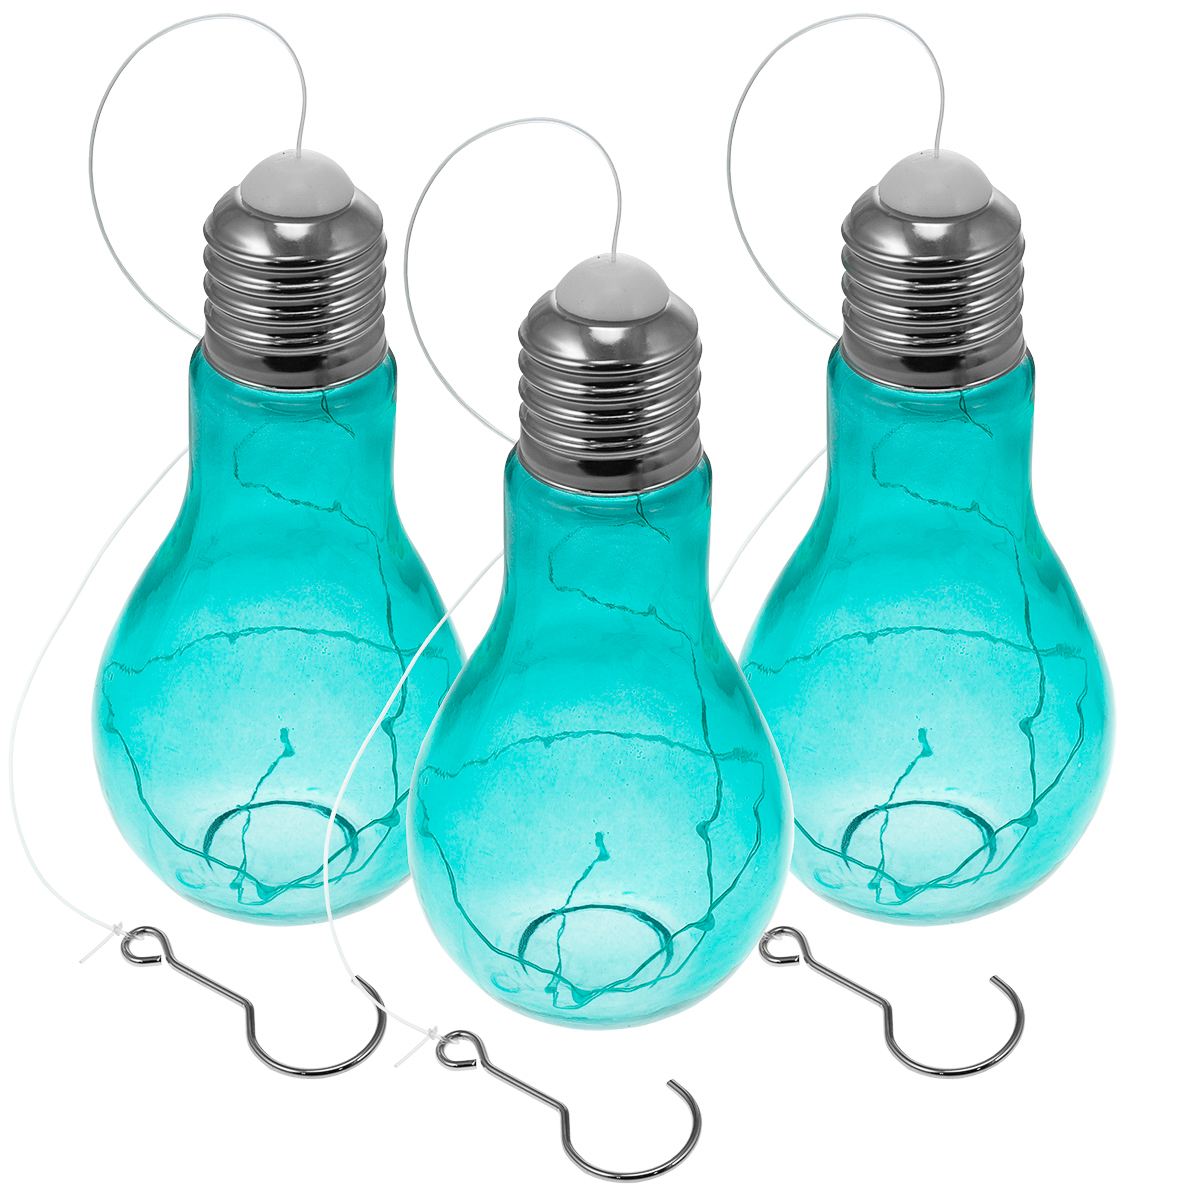 Hanging Light Bulbs Outdoor: 3 Hanging Bulb-Shaped Glass Lanterns Outdoor Pendant Lamps